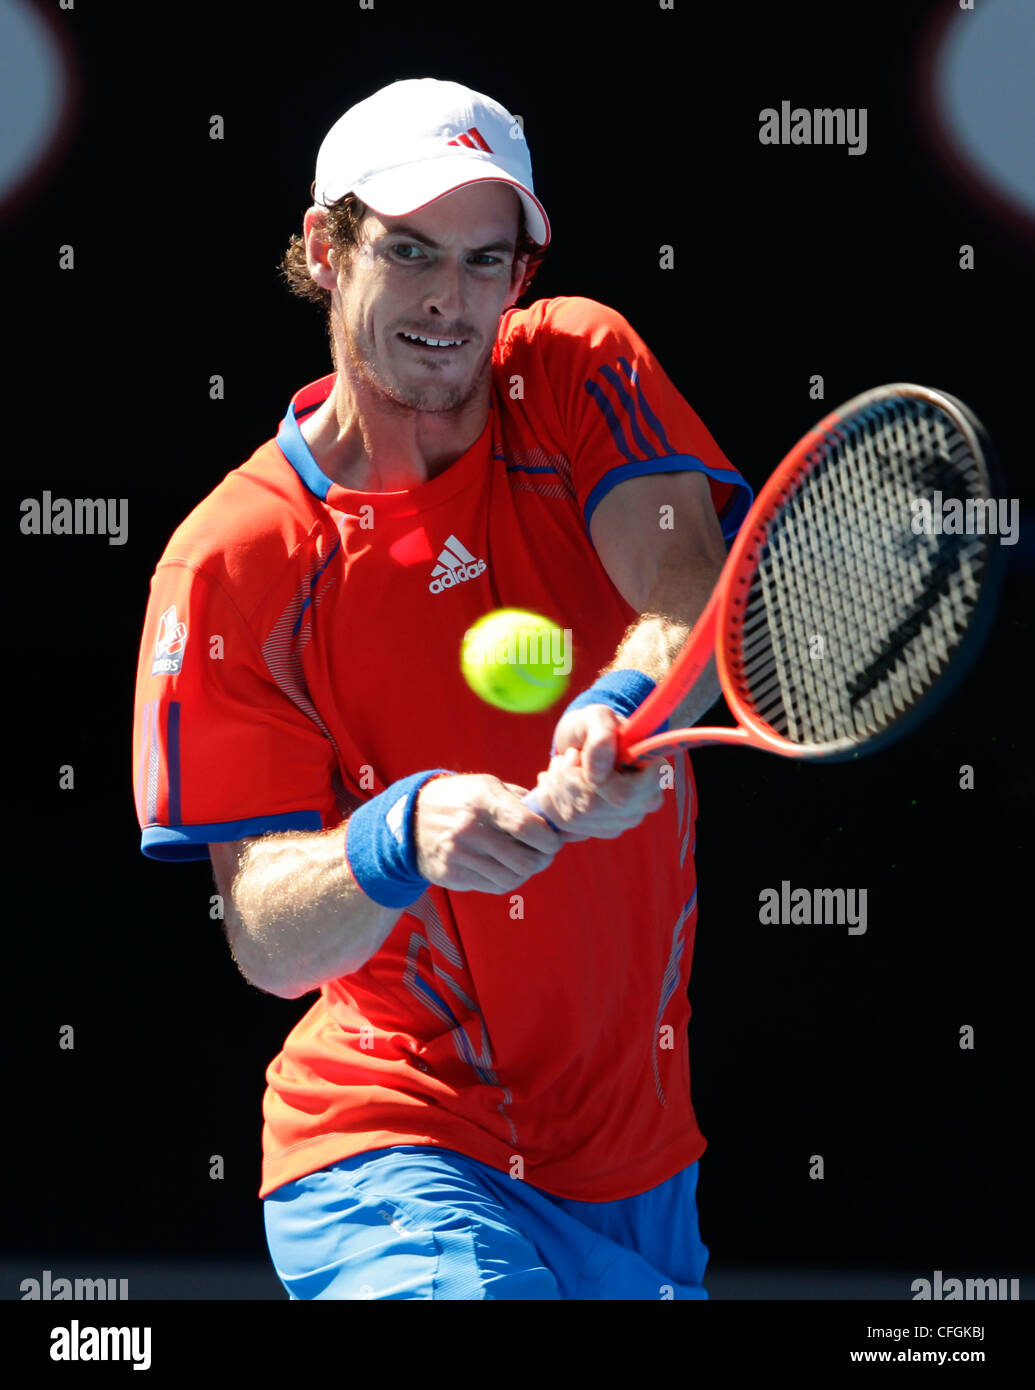 Andy Murray (GBR) at the Australian Open 2012, ITF Grand Slam Tennis Tournament, Melbourne Park,Australia. - Stock Image